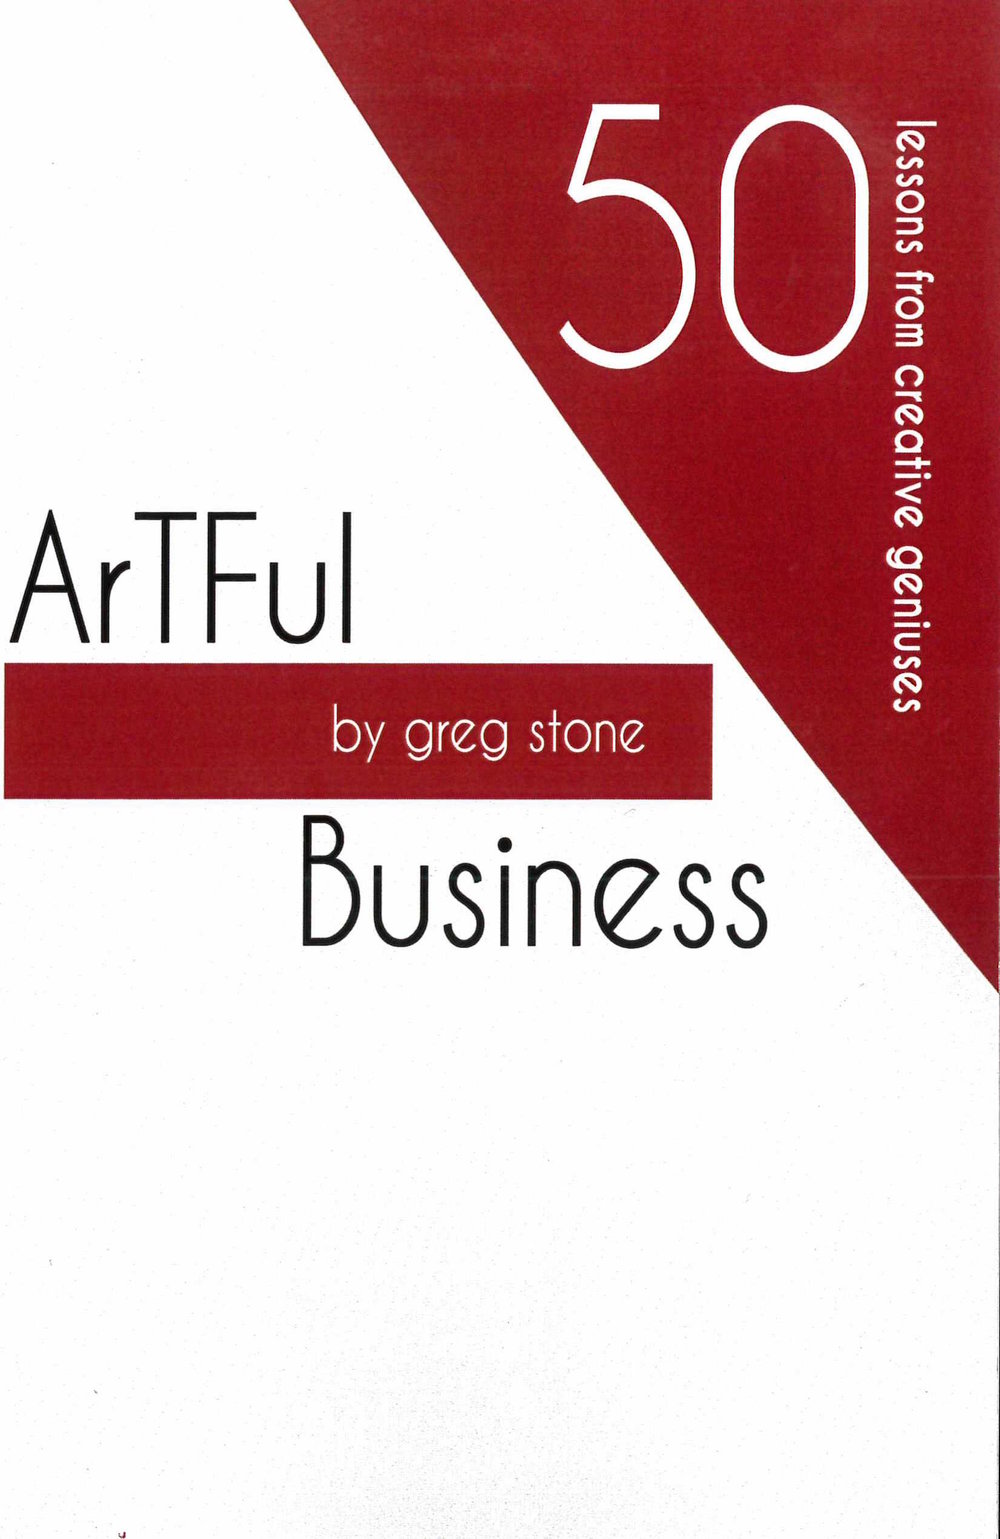 Artful Business